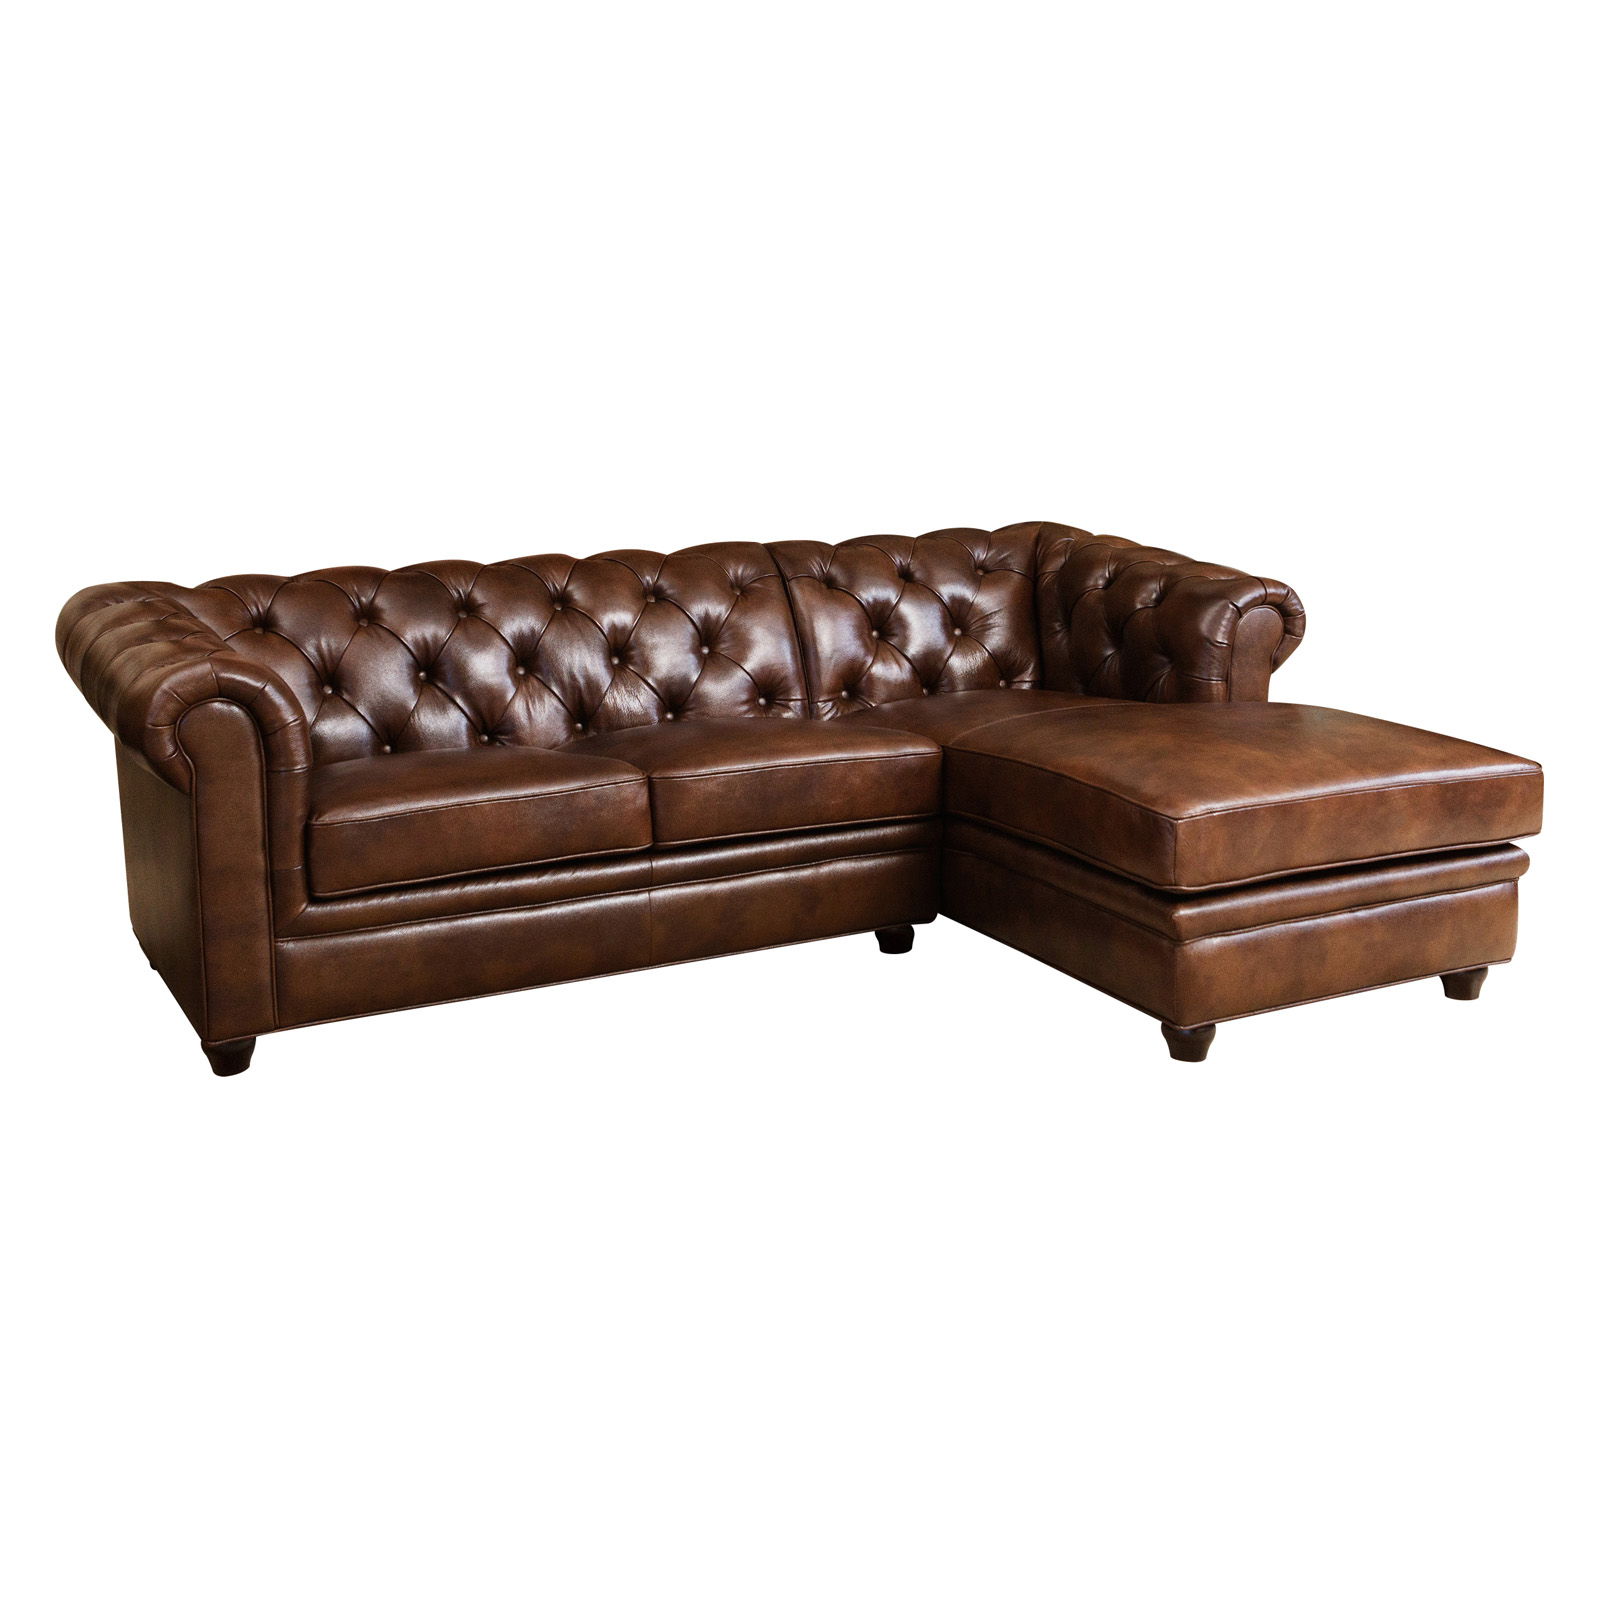 Abbyson Tuscan Top Grain Leather Chaise Sectional